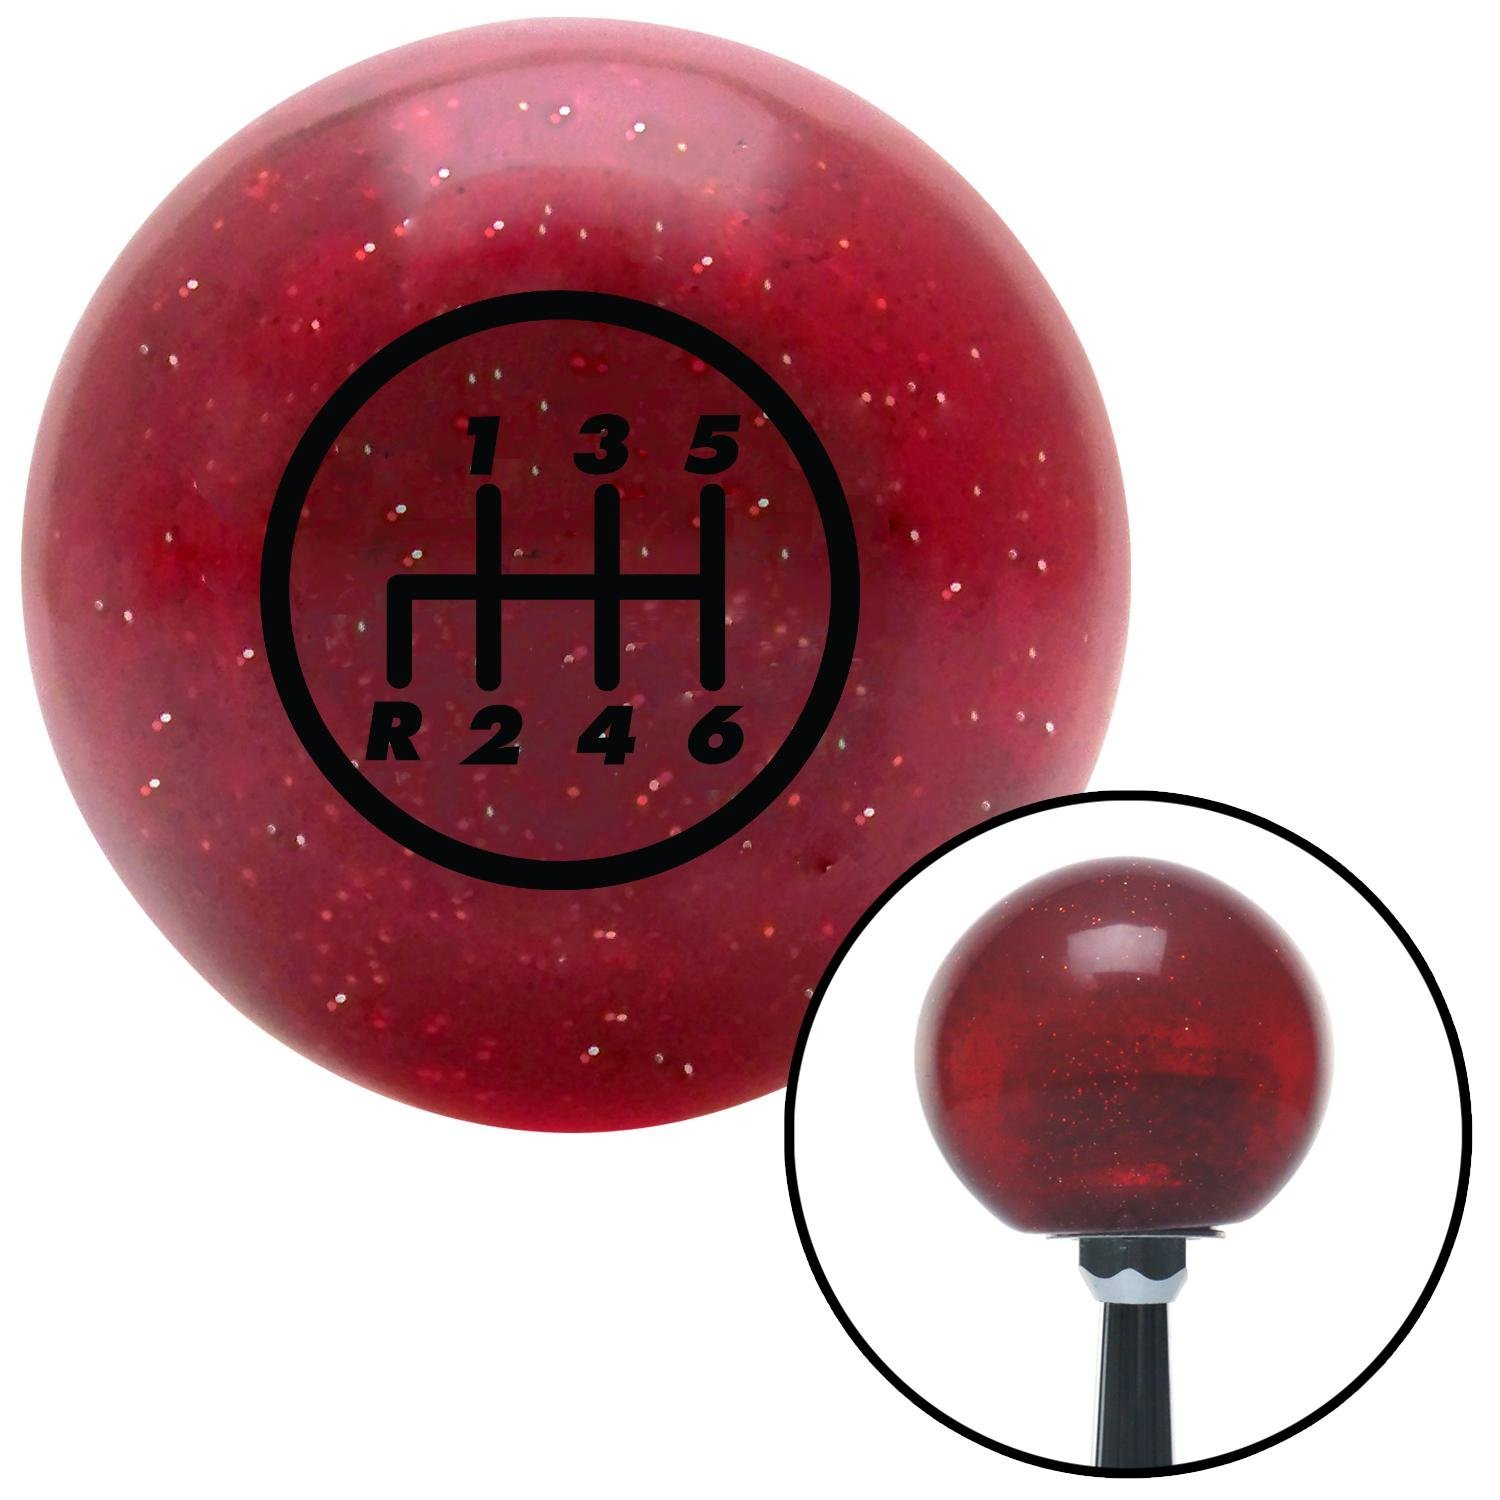 American Shifter 73122 Black Metal Flake Shift Knob with M16 x 1.5 Insert Red Headphones